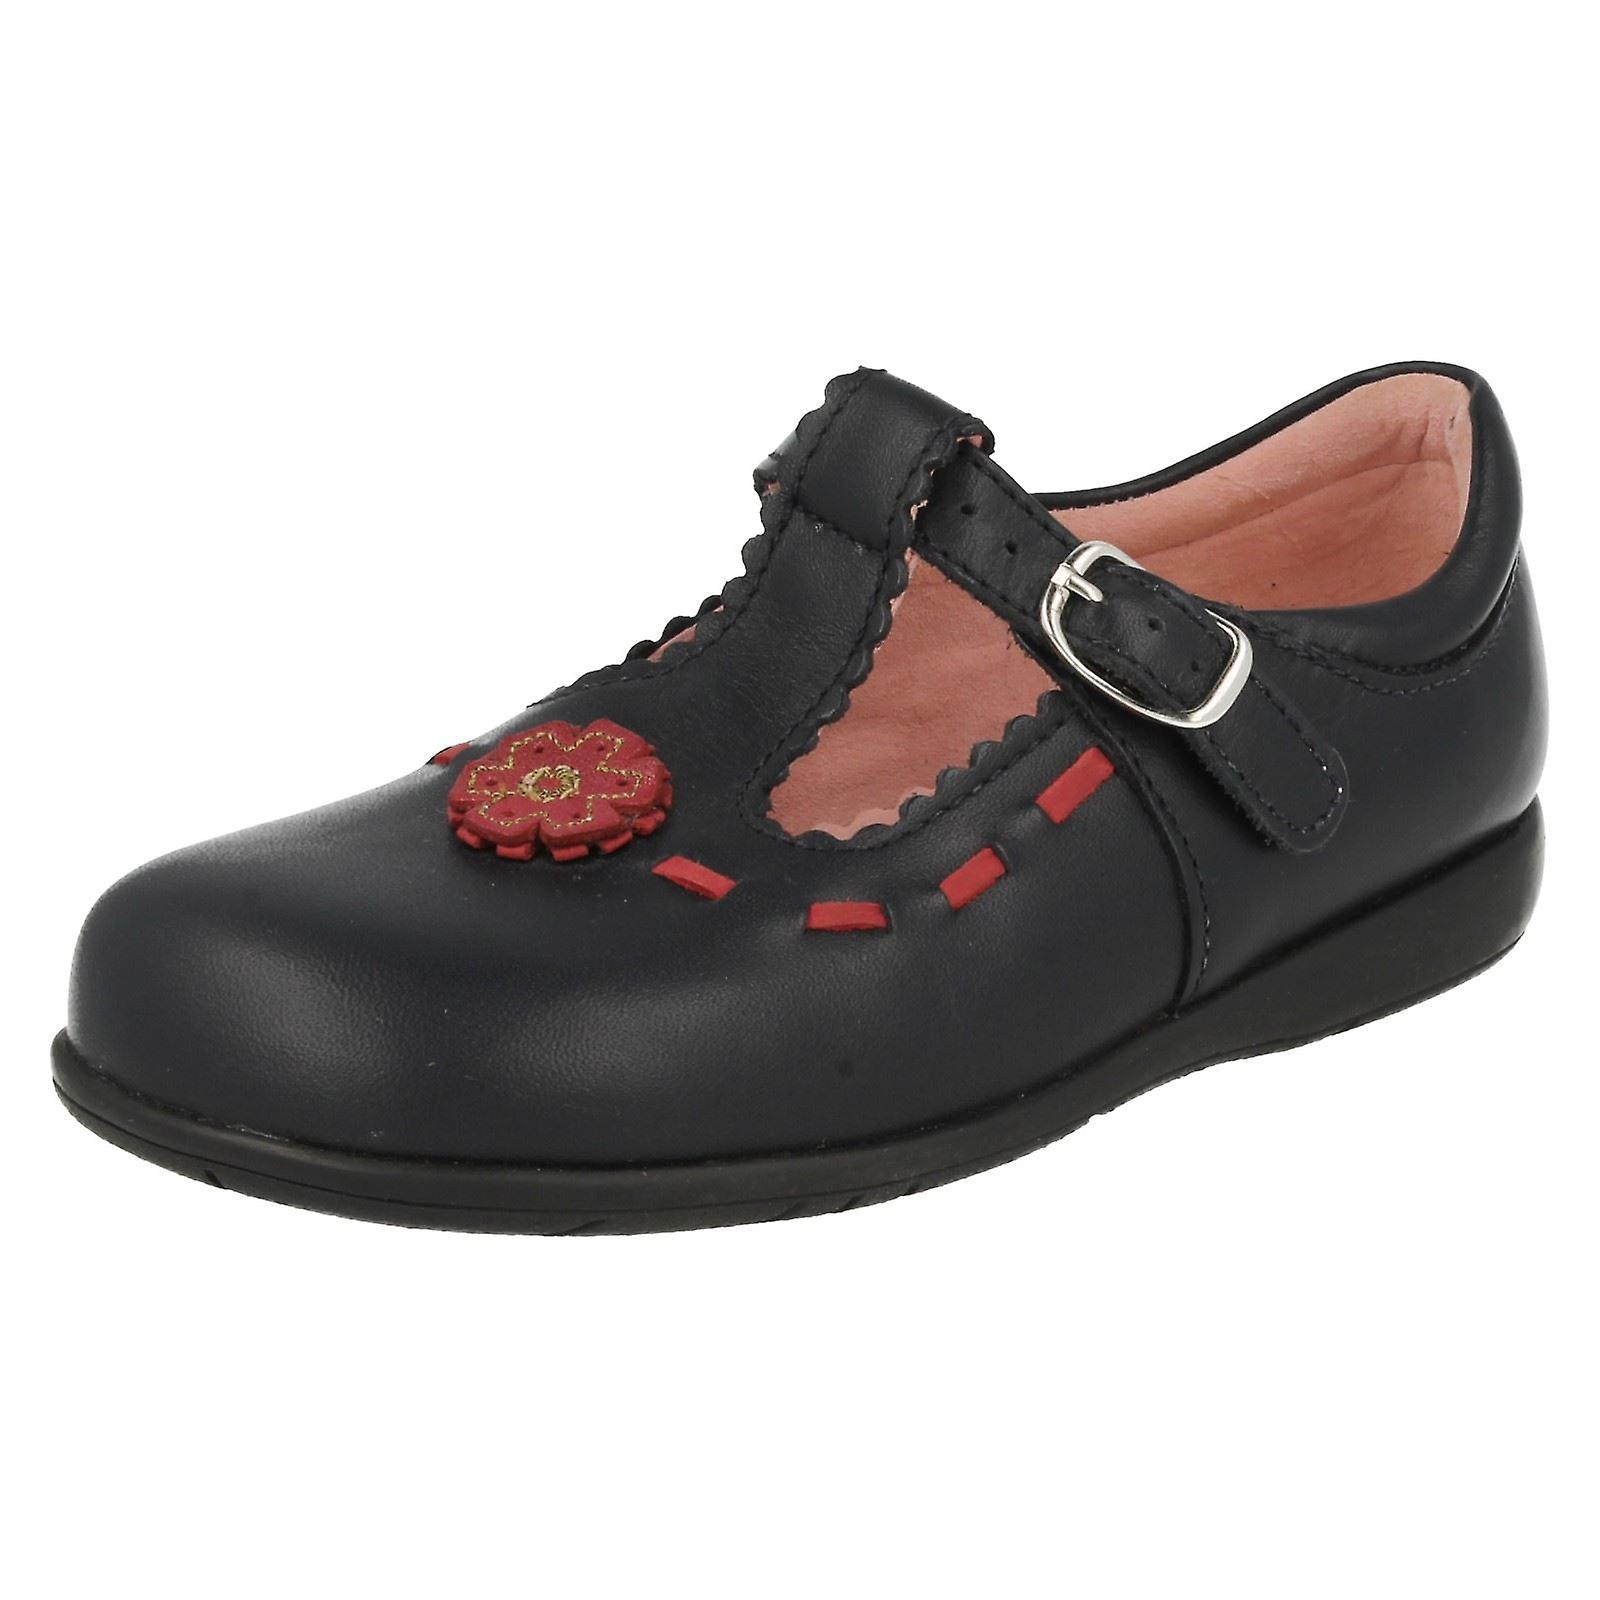 Girls Startrite Startrite Girls T-Bar Formal/Casual Shoes Daisy c7eac4